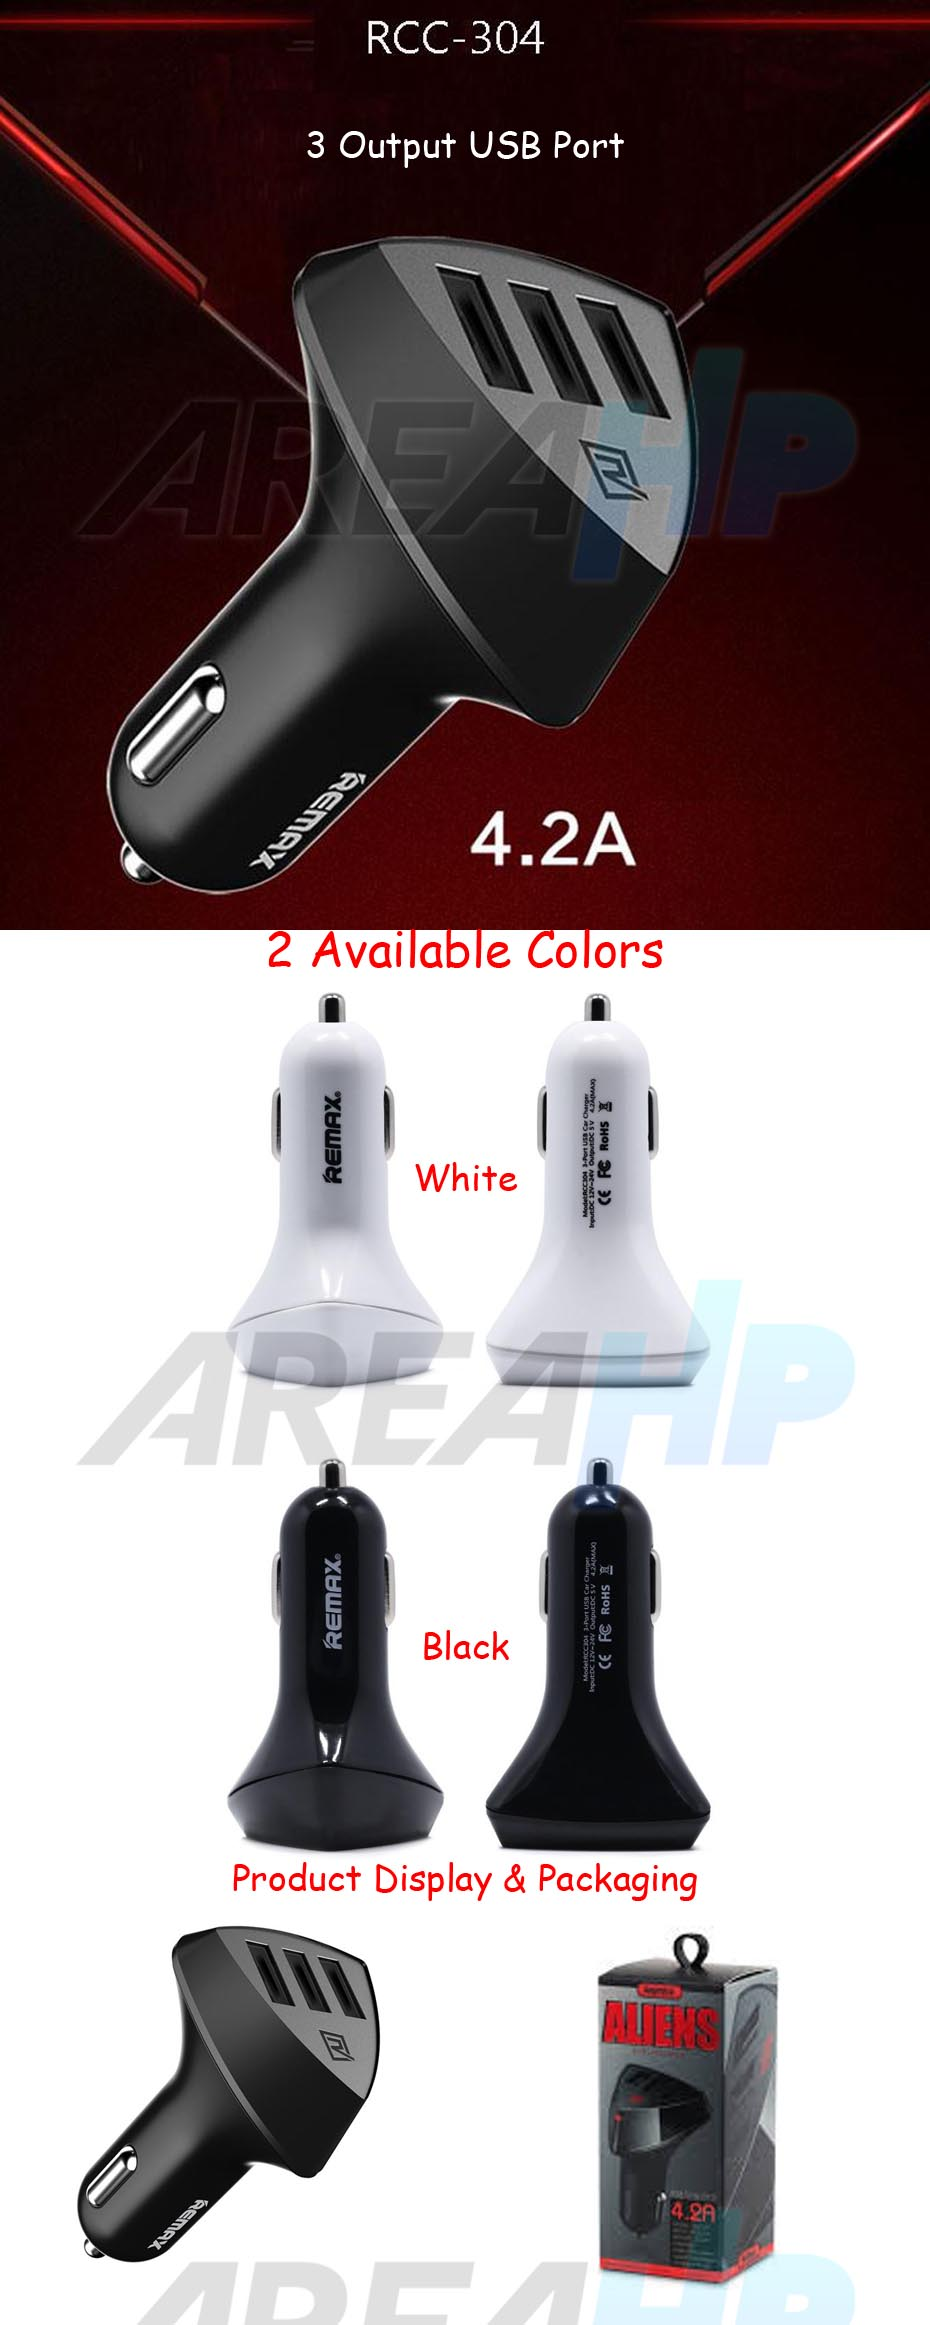 Remax Alien Car Fast Charger 3 USB Port 4.2A RC-C304 Overview